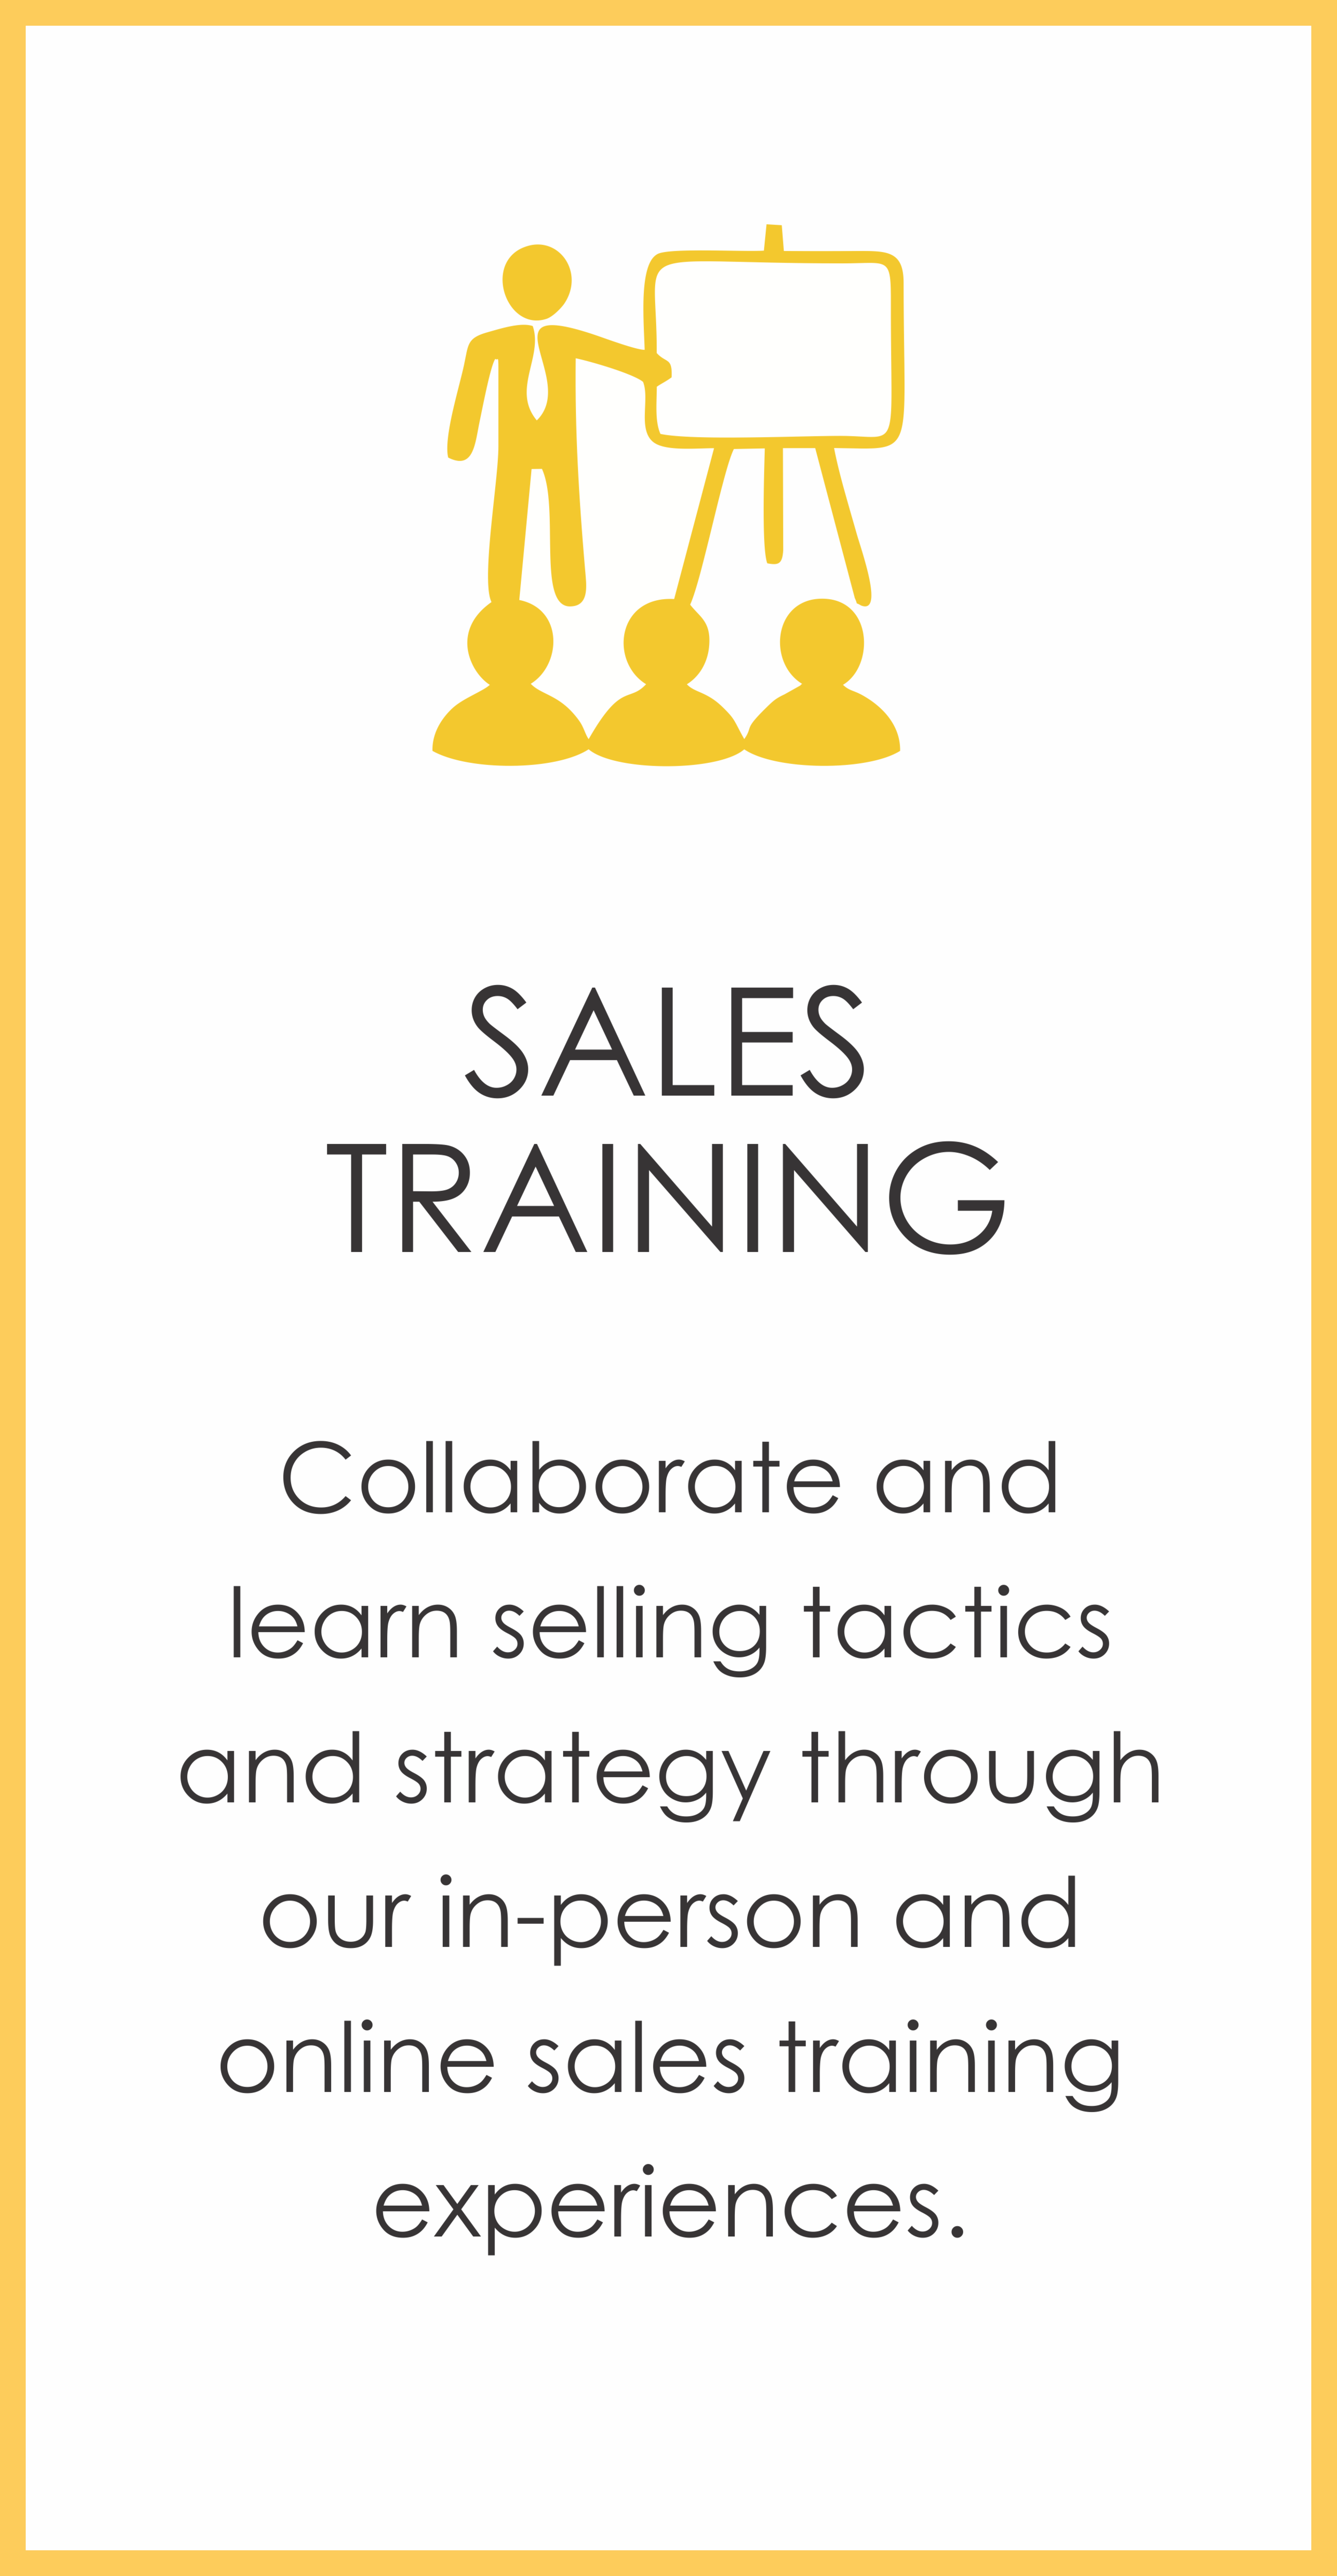 SALES_TRAINING_10-1-19.png